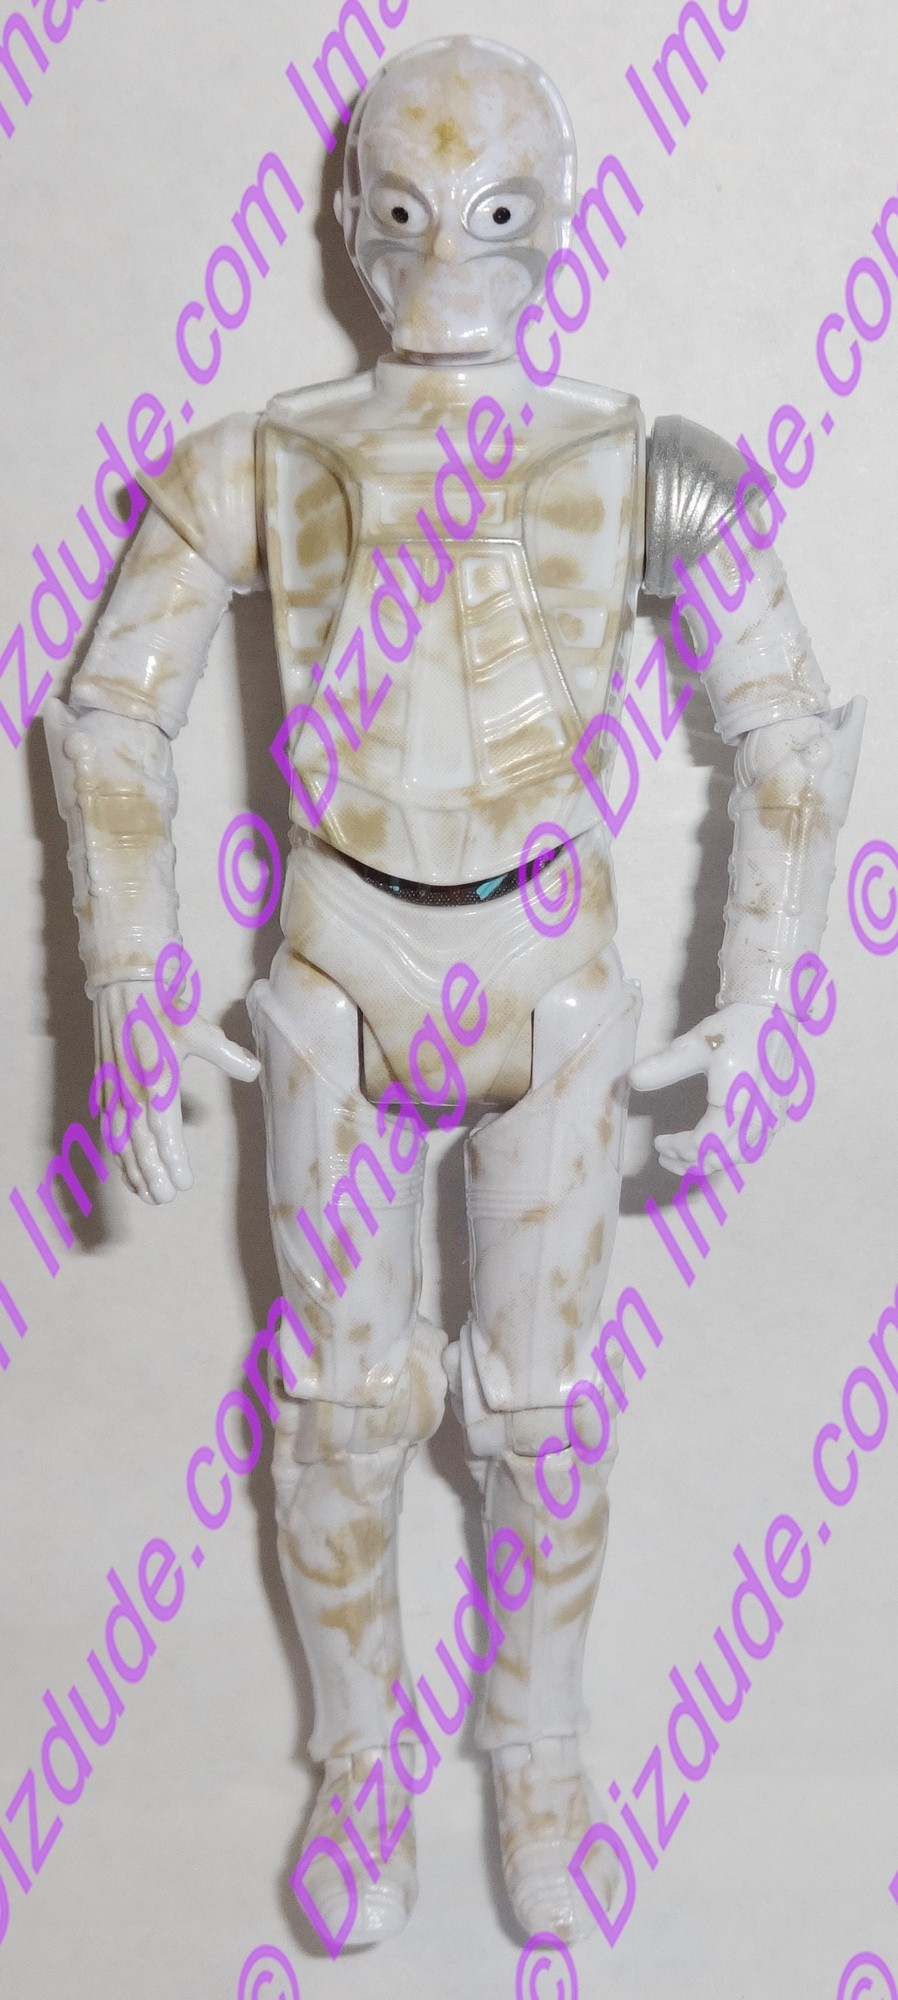 White CZ Protocol Droid from Disney Star Wars Build-A-Droid Factory © Dizdude.com